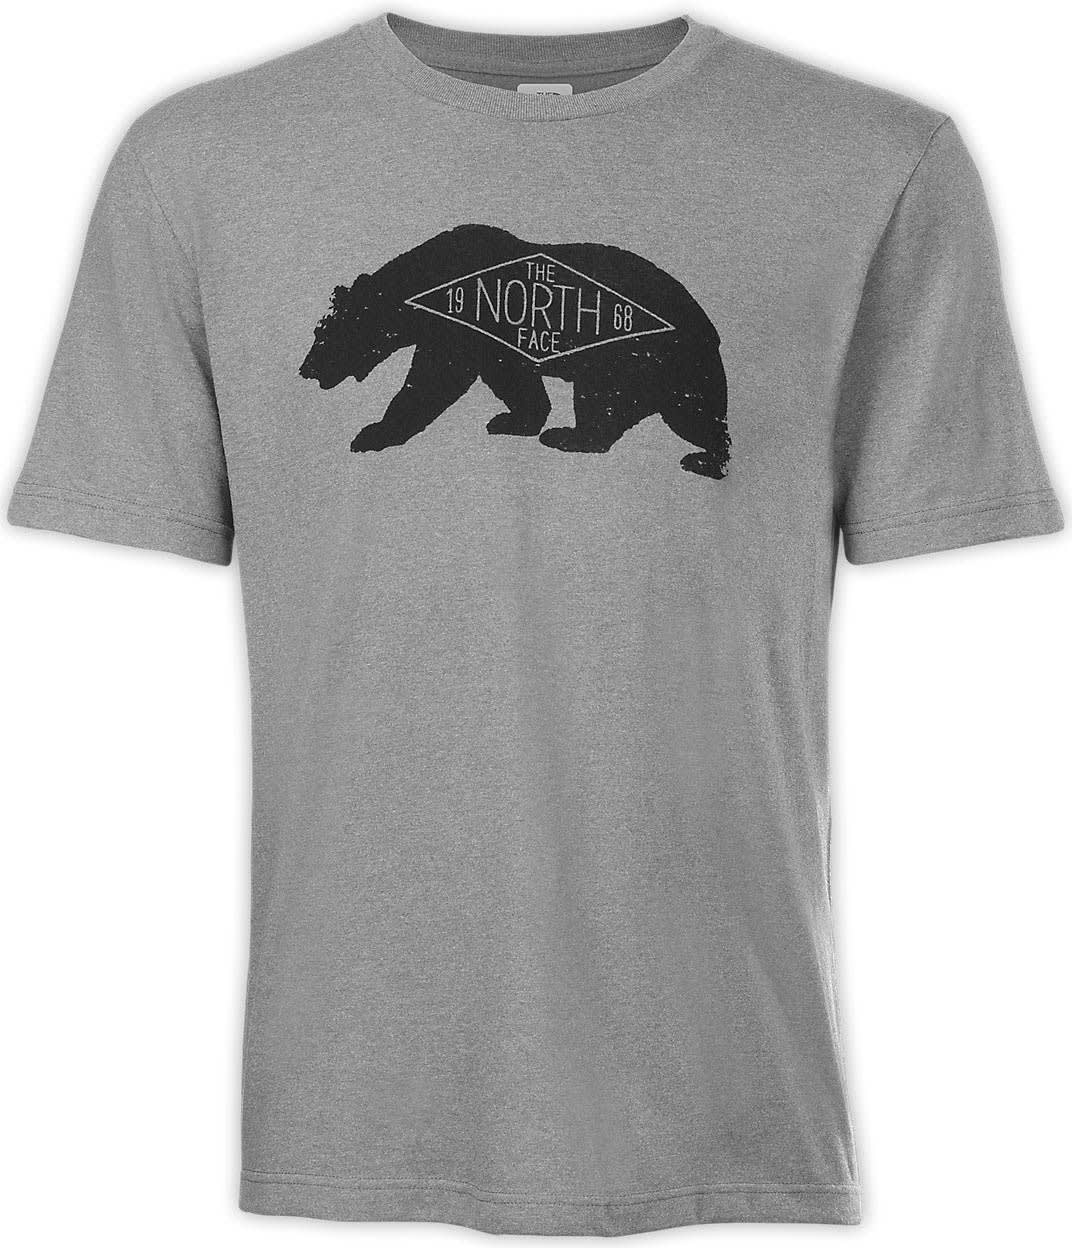 On Sale The North Face Heritage Bear T Shirt Up To 50 Off